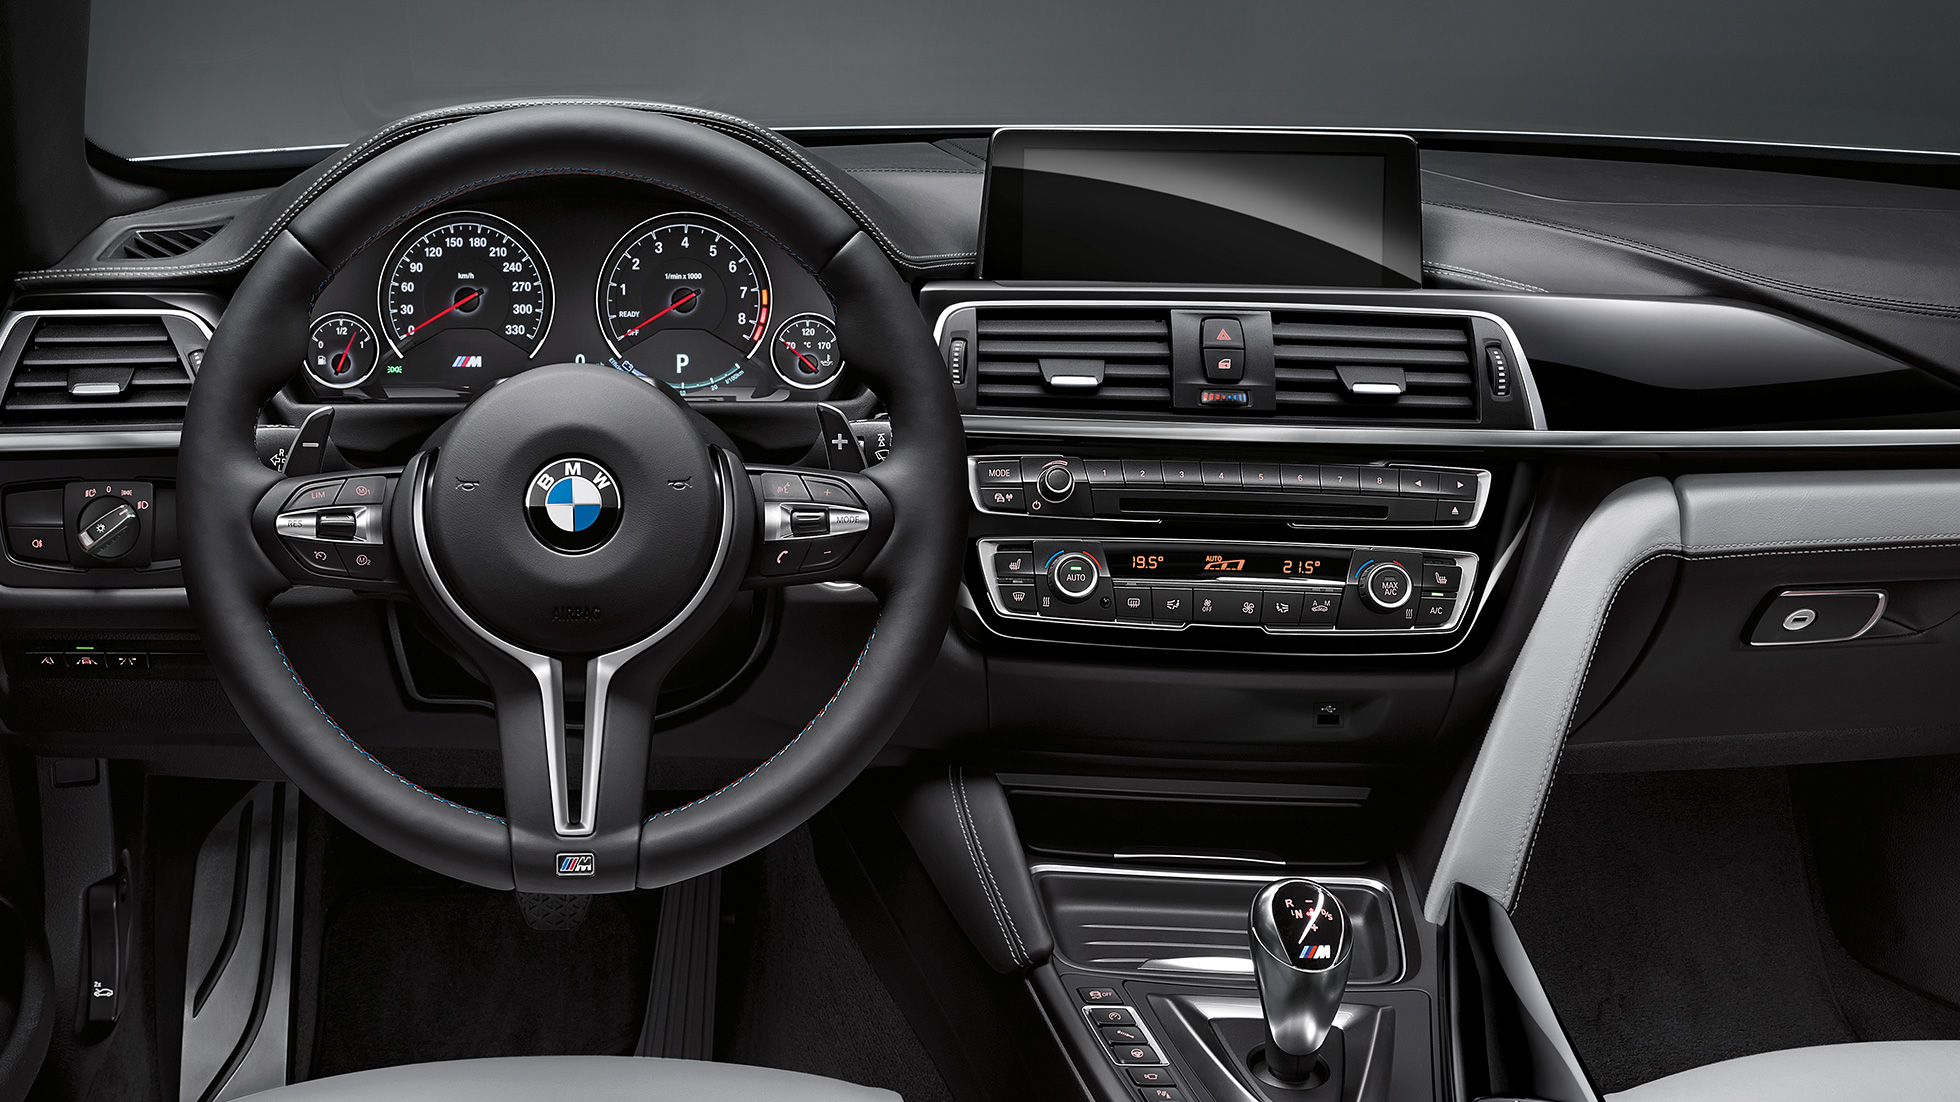 The Bmw M4 Convertible Discover More Bmw Com Sg